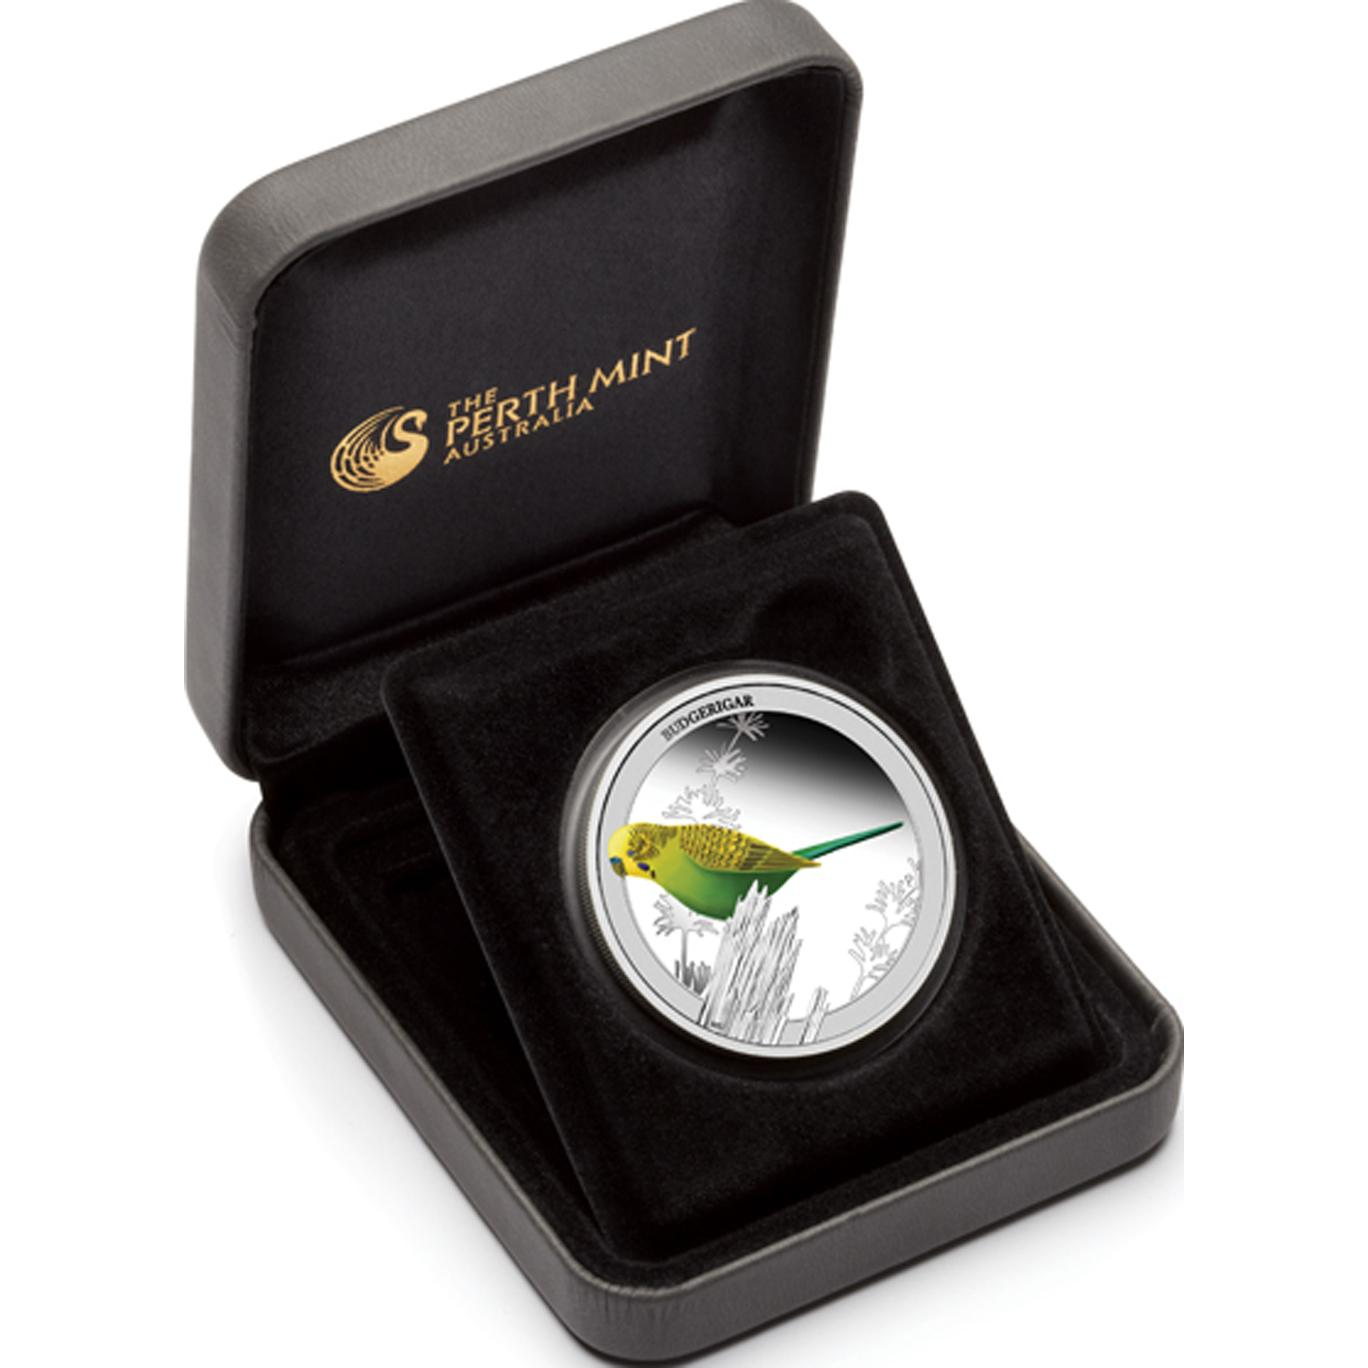 2013 1/2 oz Silver Proof - BUDGERIGAR